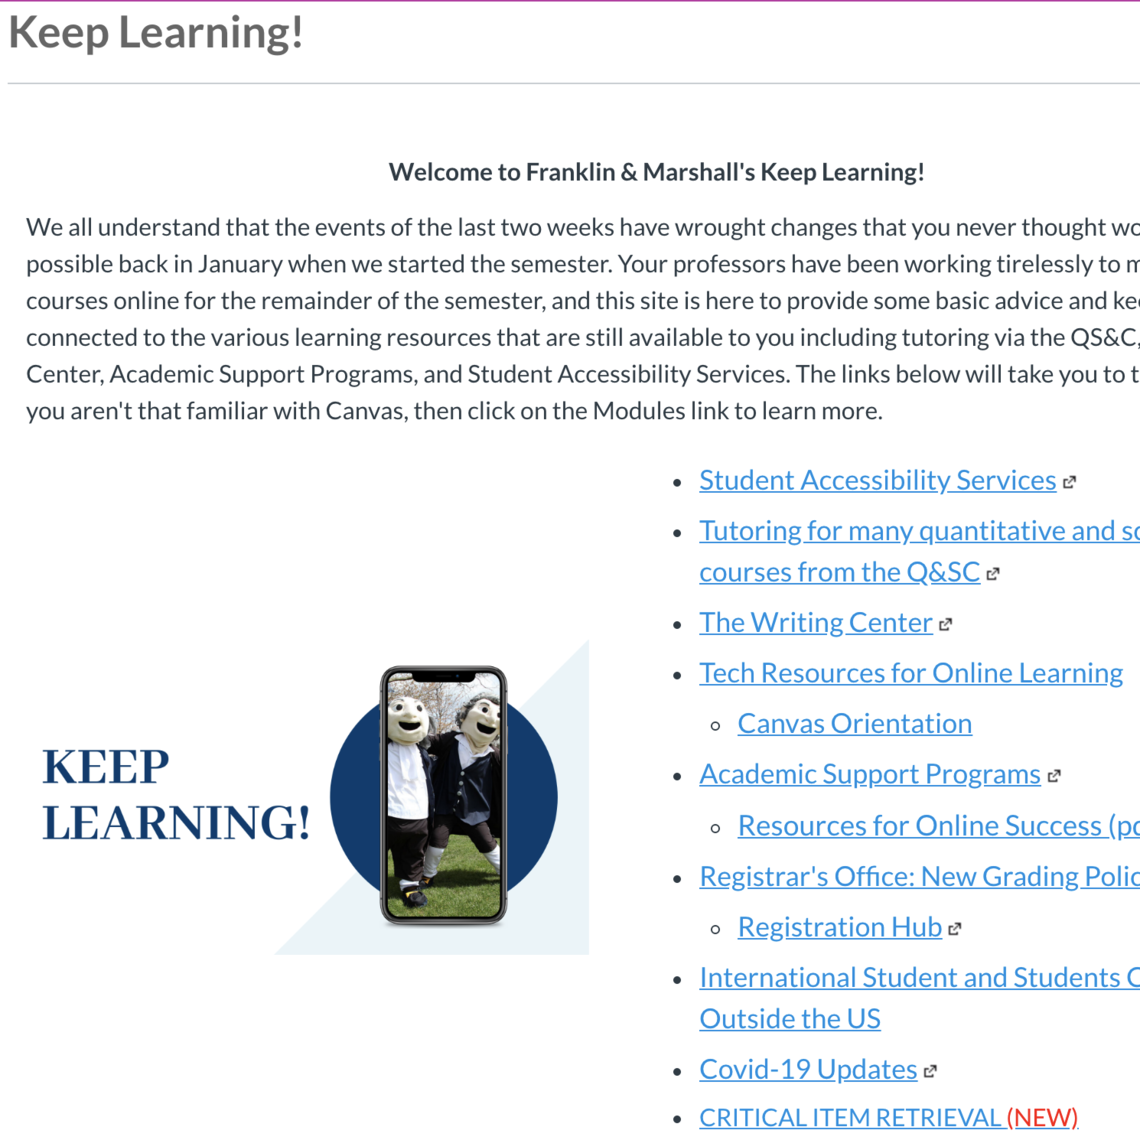 Keep Learning Canvas Home Page and Menu